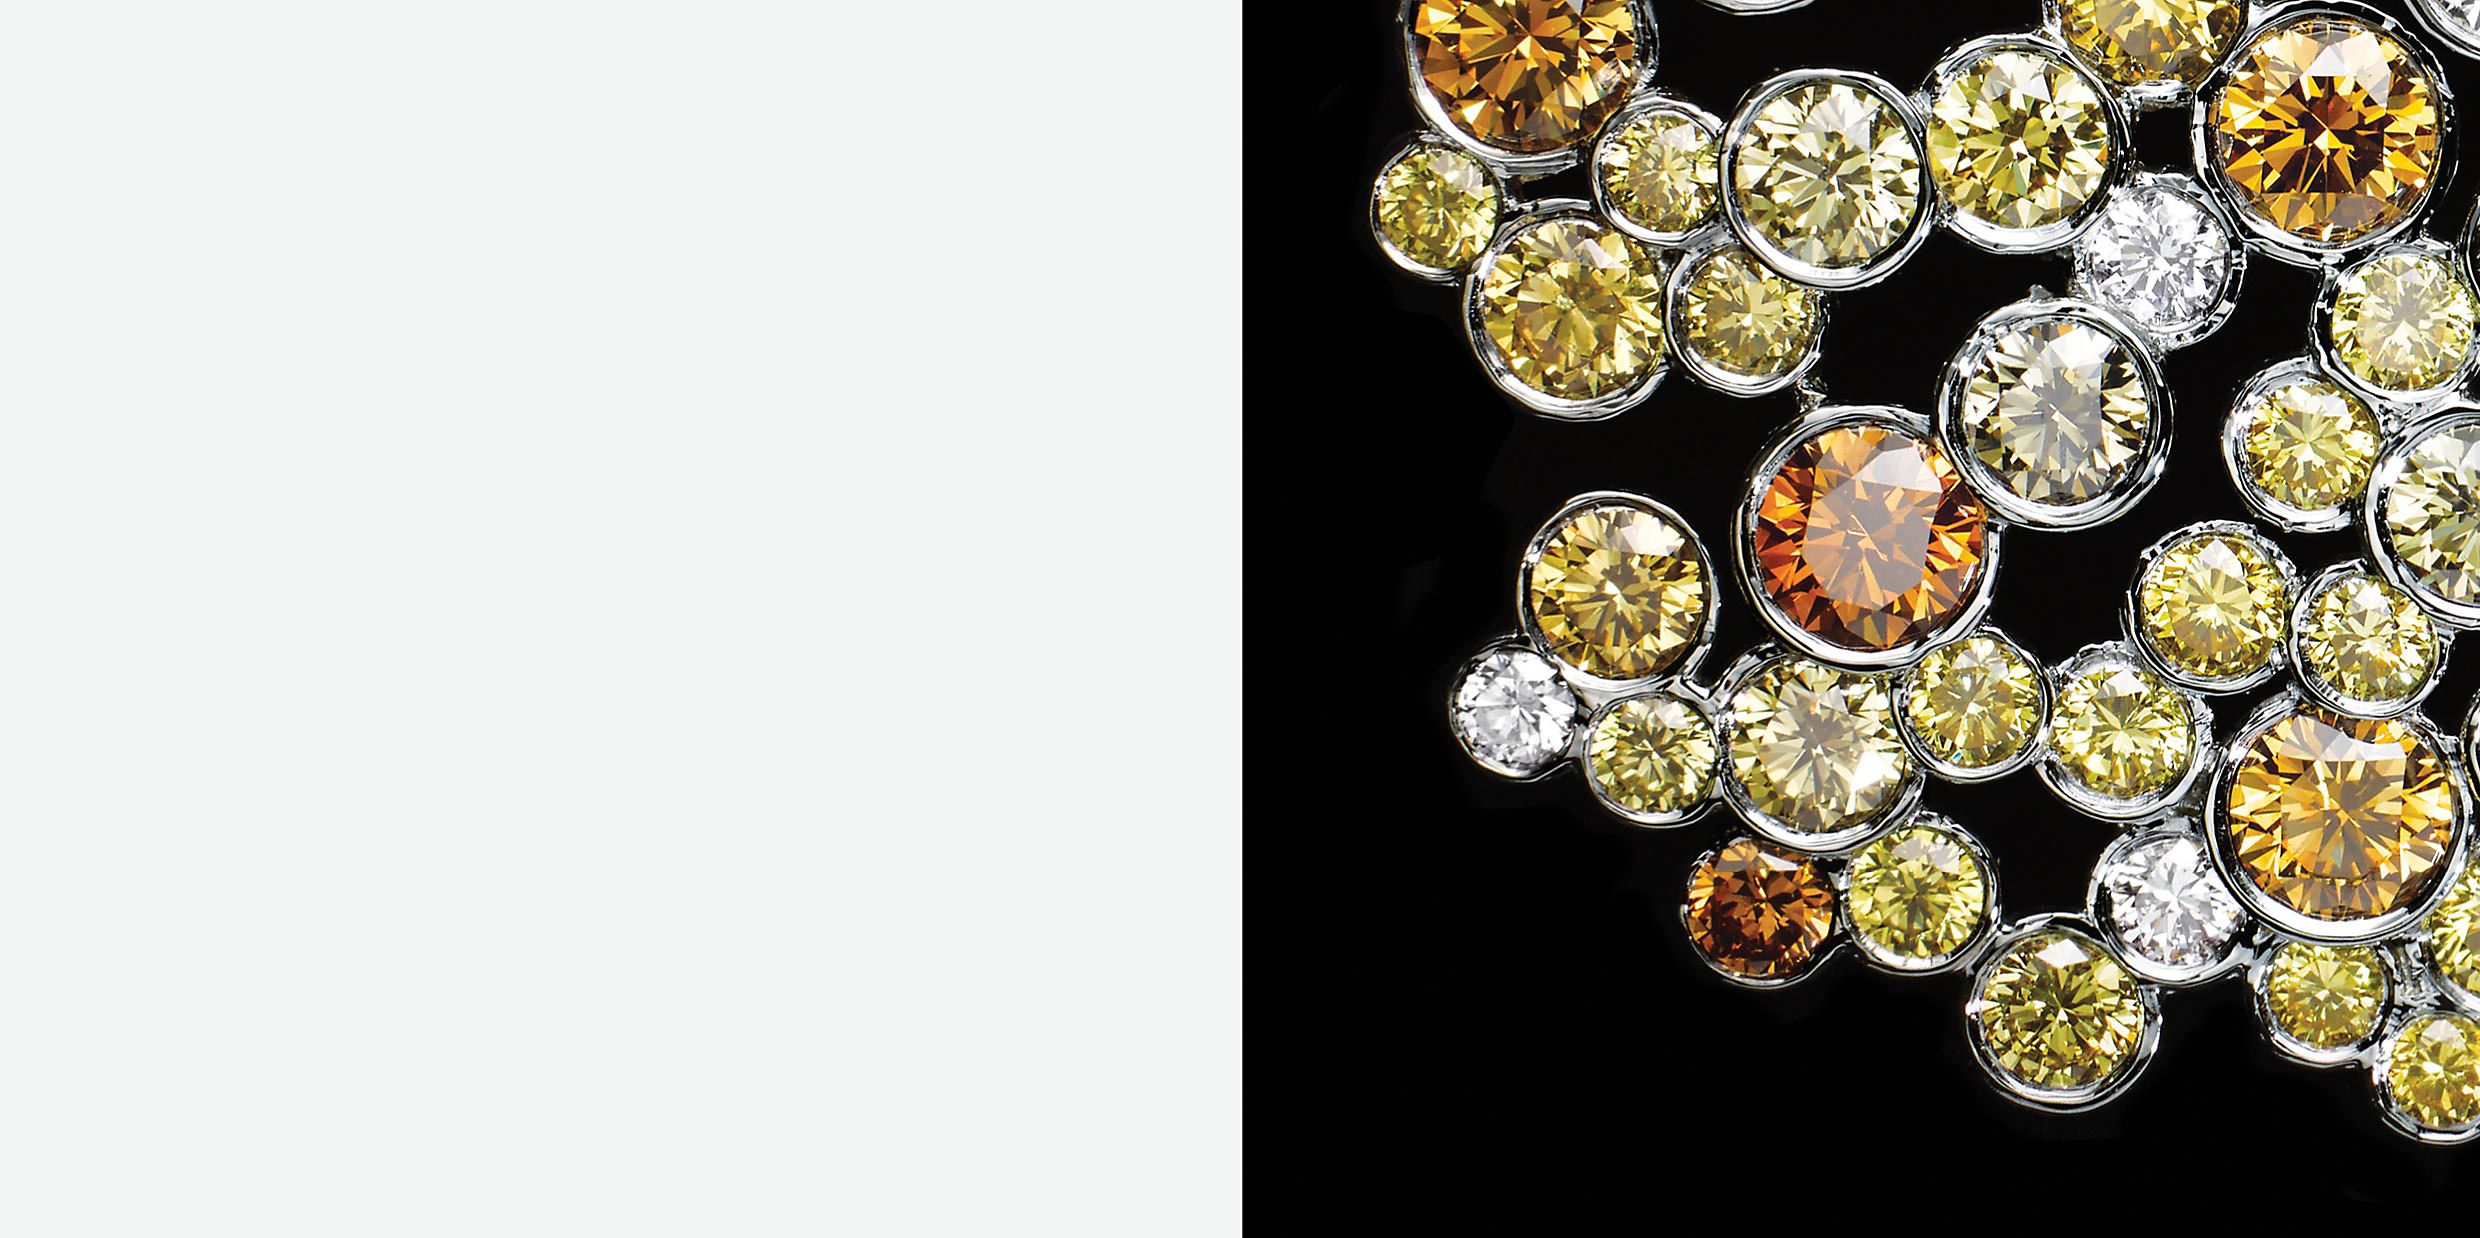 Earrings in platinum with round yellow and white diamonds